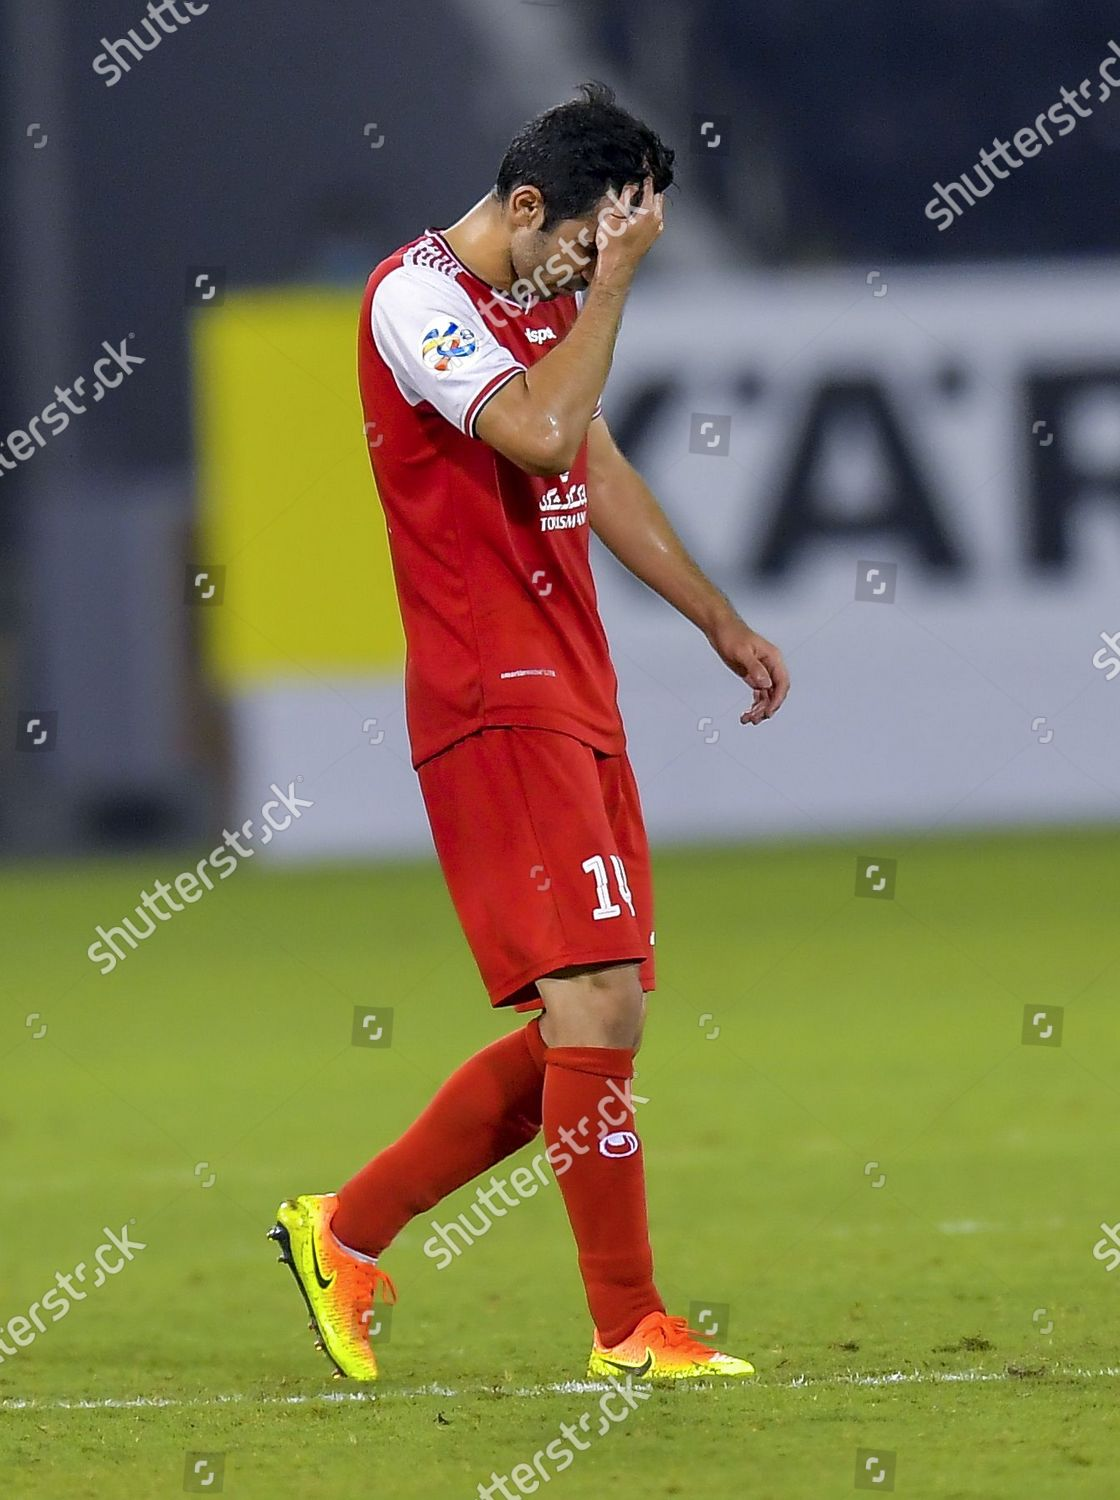 Ehsan Pahlavan Persepolis Fc Leaves Pitch After Editorial Stock Photo Stock Image Shutterstock